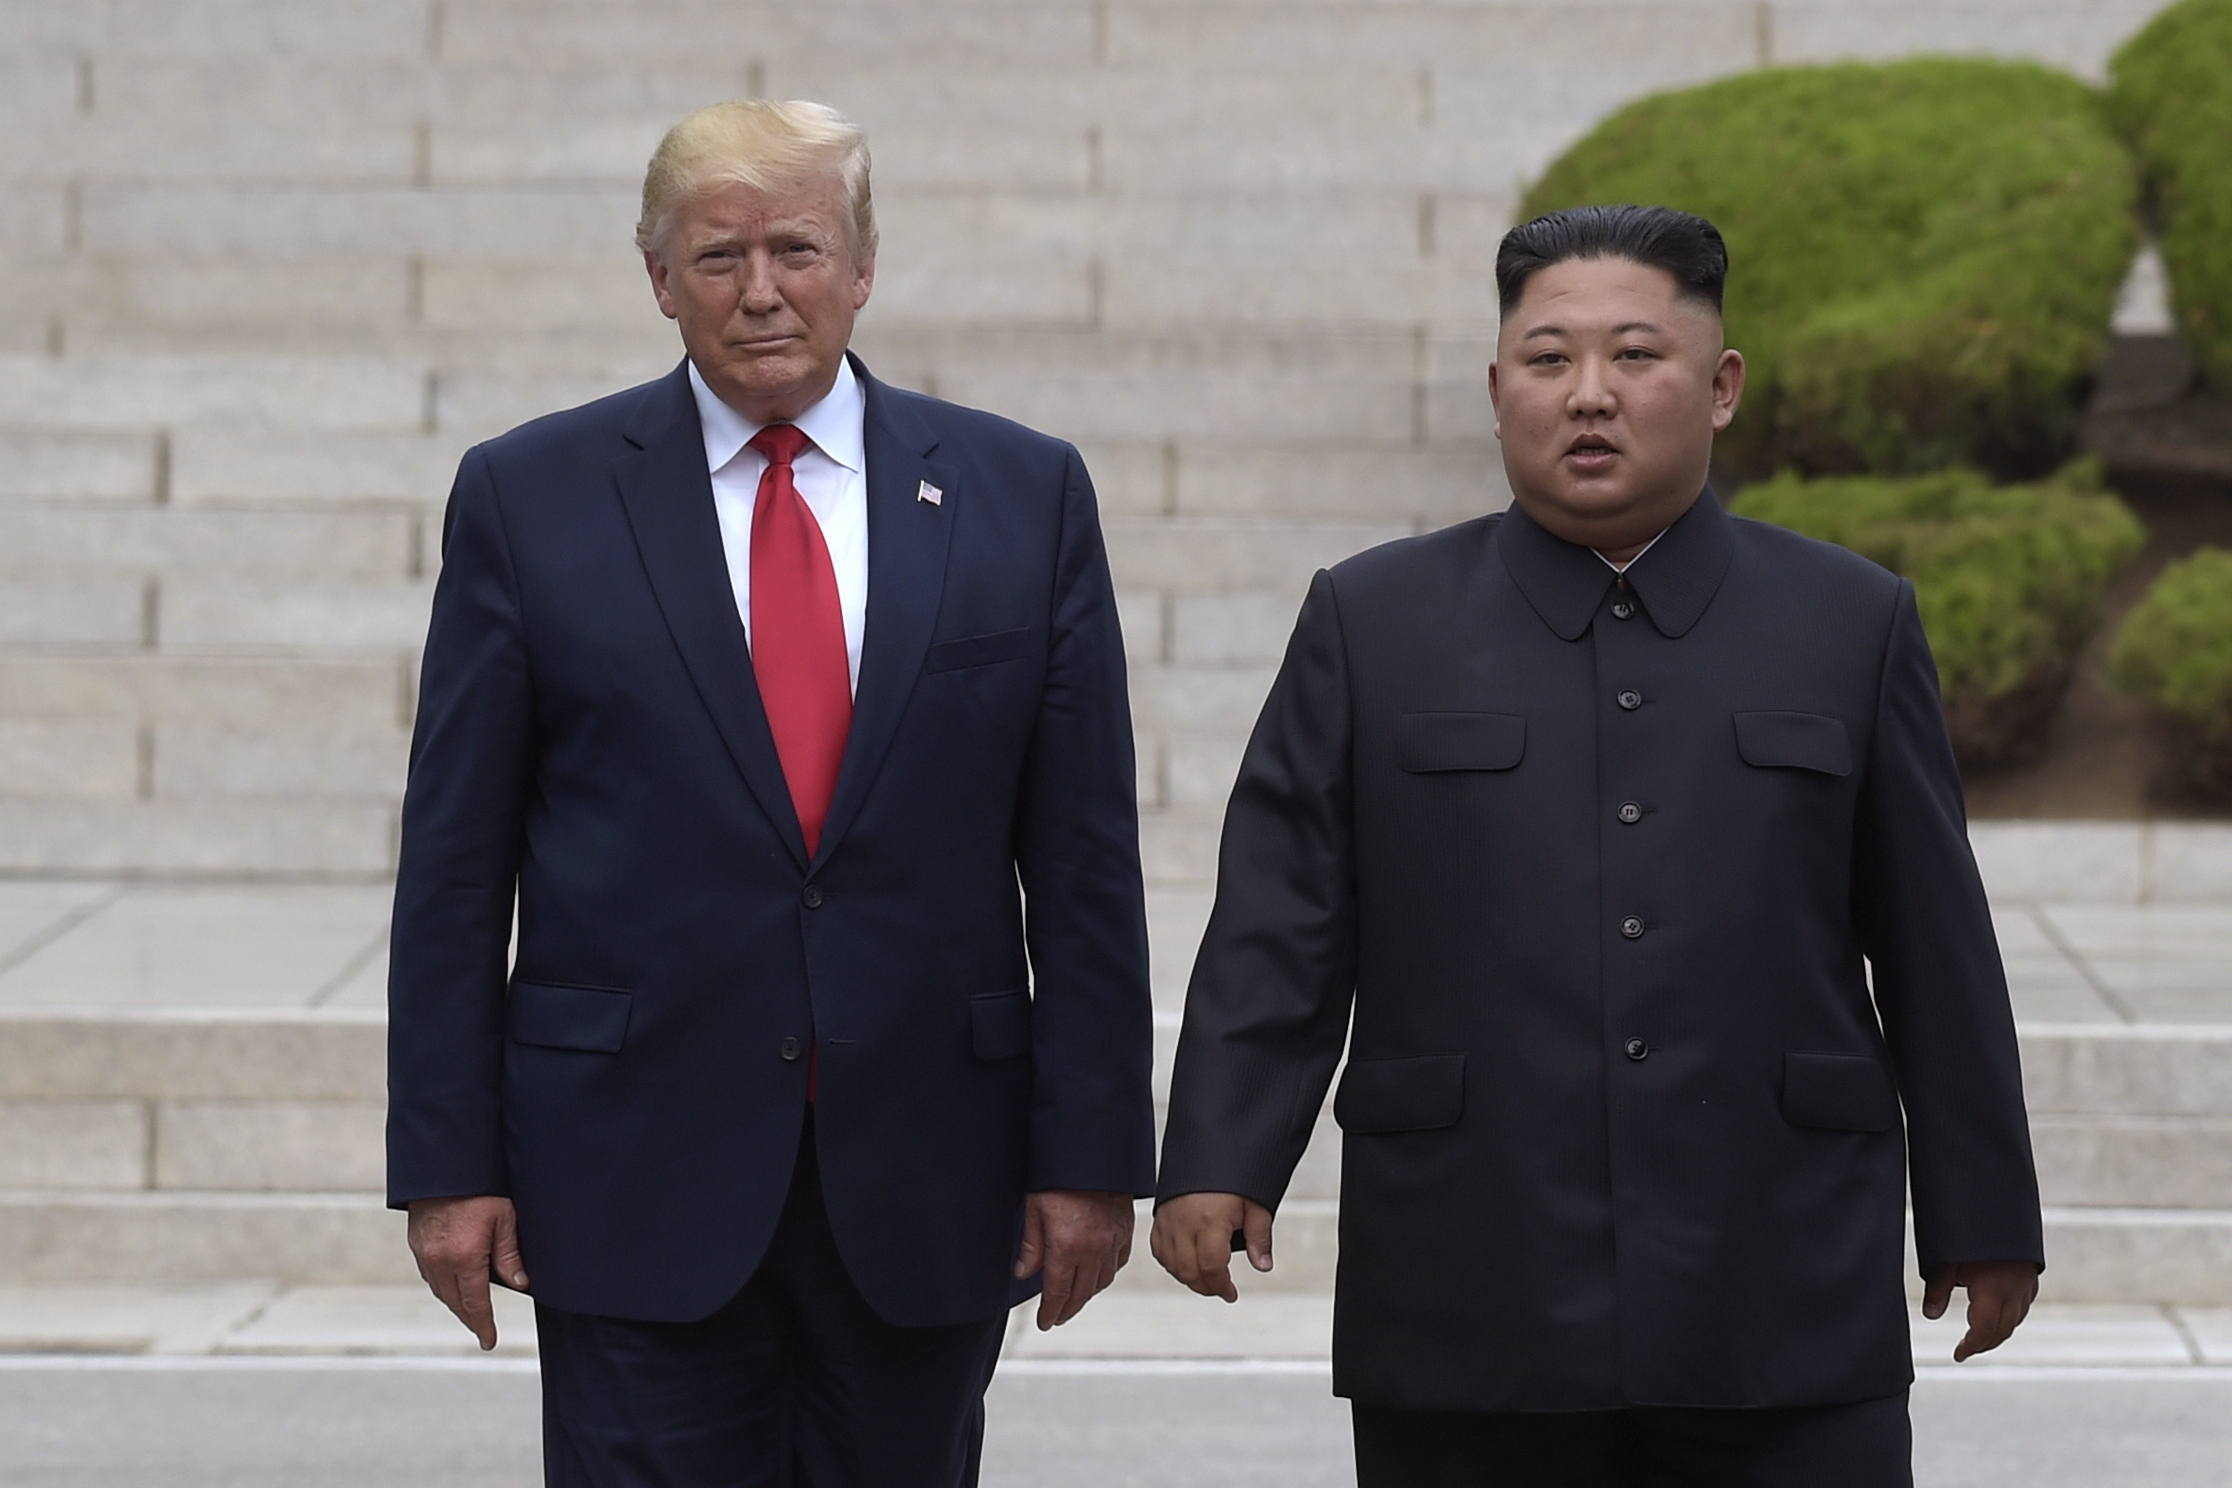 In this June 30, 2019, file photo, U.S. President Donald Trump, left, meets with North Korean leader Kim Jong Un at the North Korean side of the border at the village of Panmunjom in Demilitarized Zone. (Susan Walsh/AP)